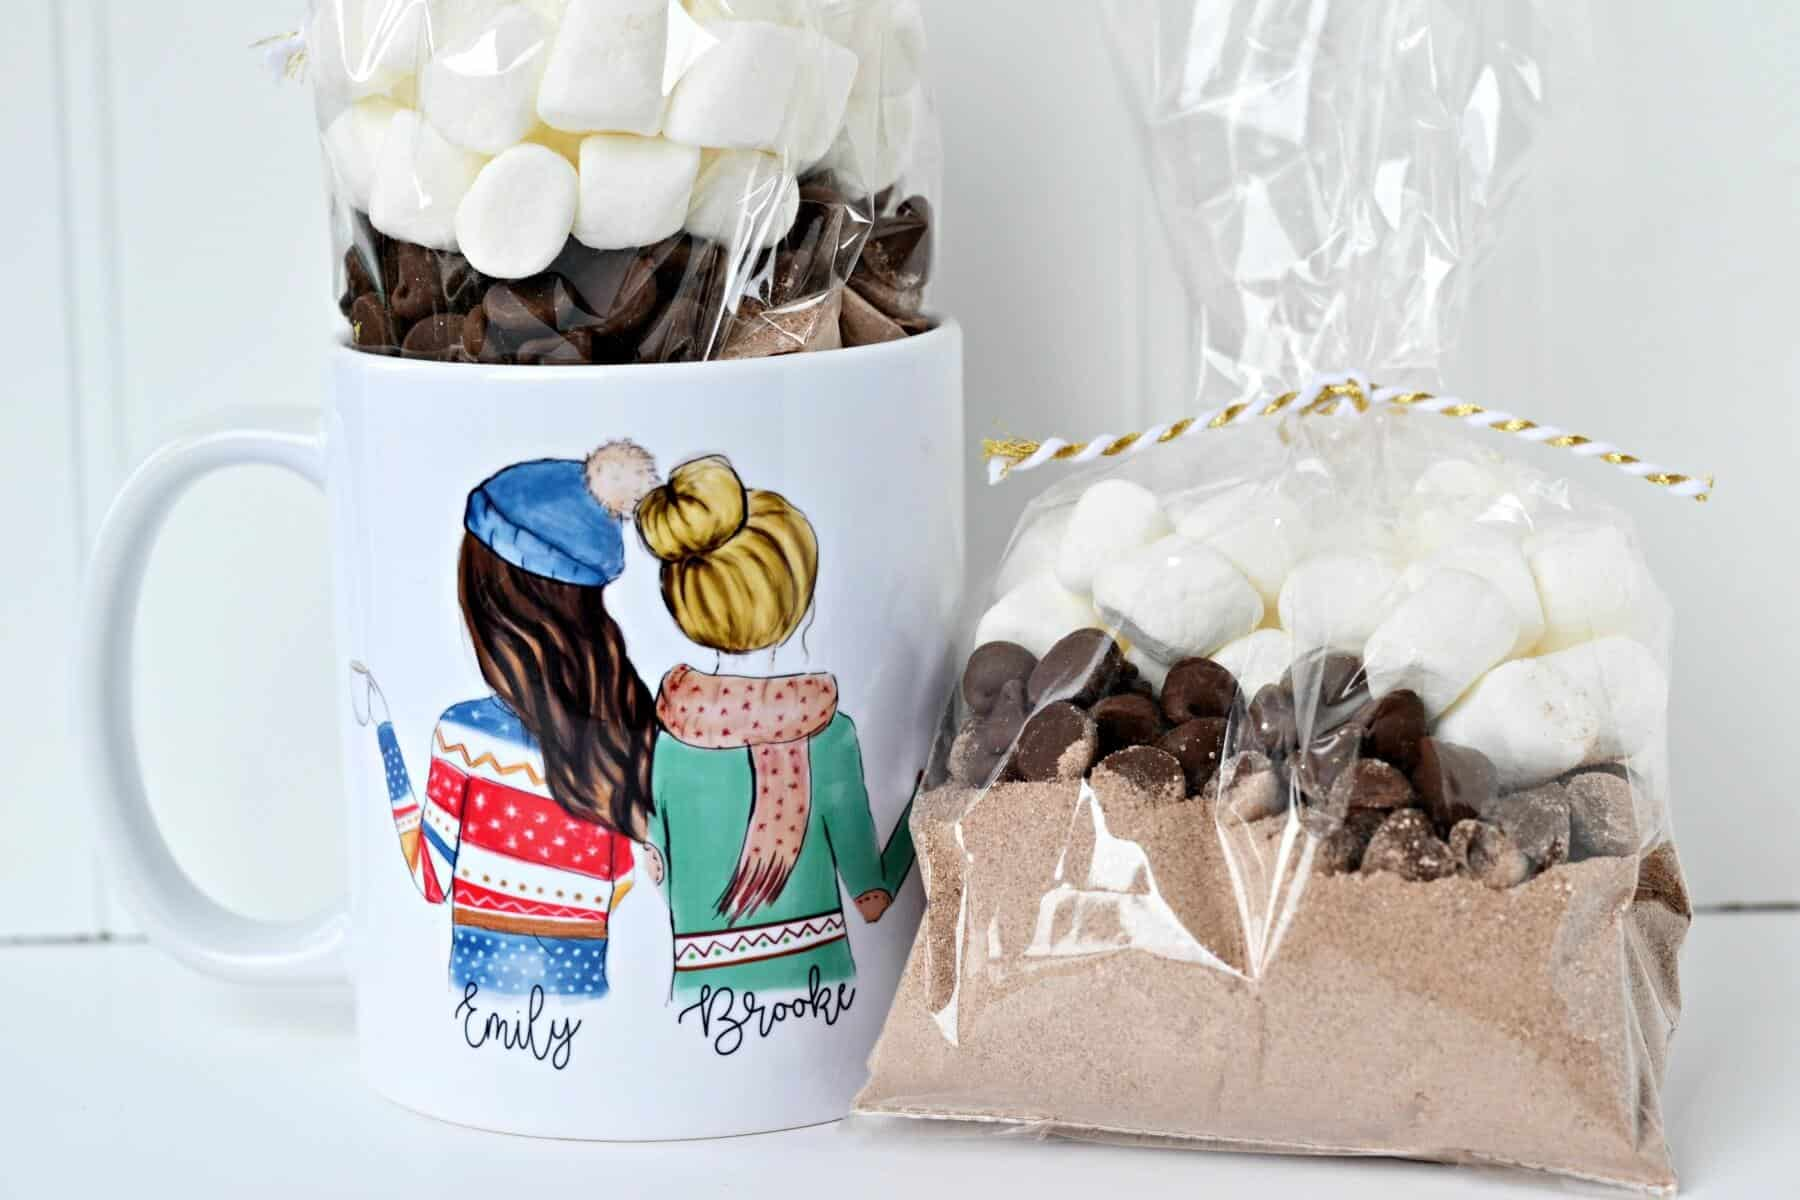 Creative Coffee Mug Gift Ideas To Make Your Friends and ...